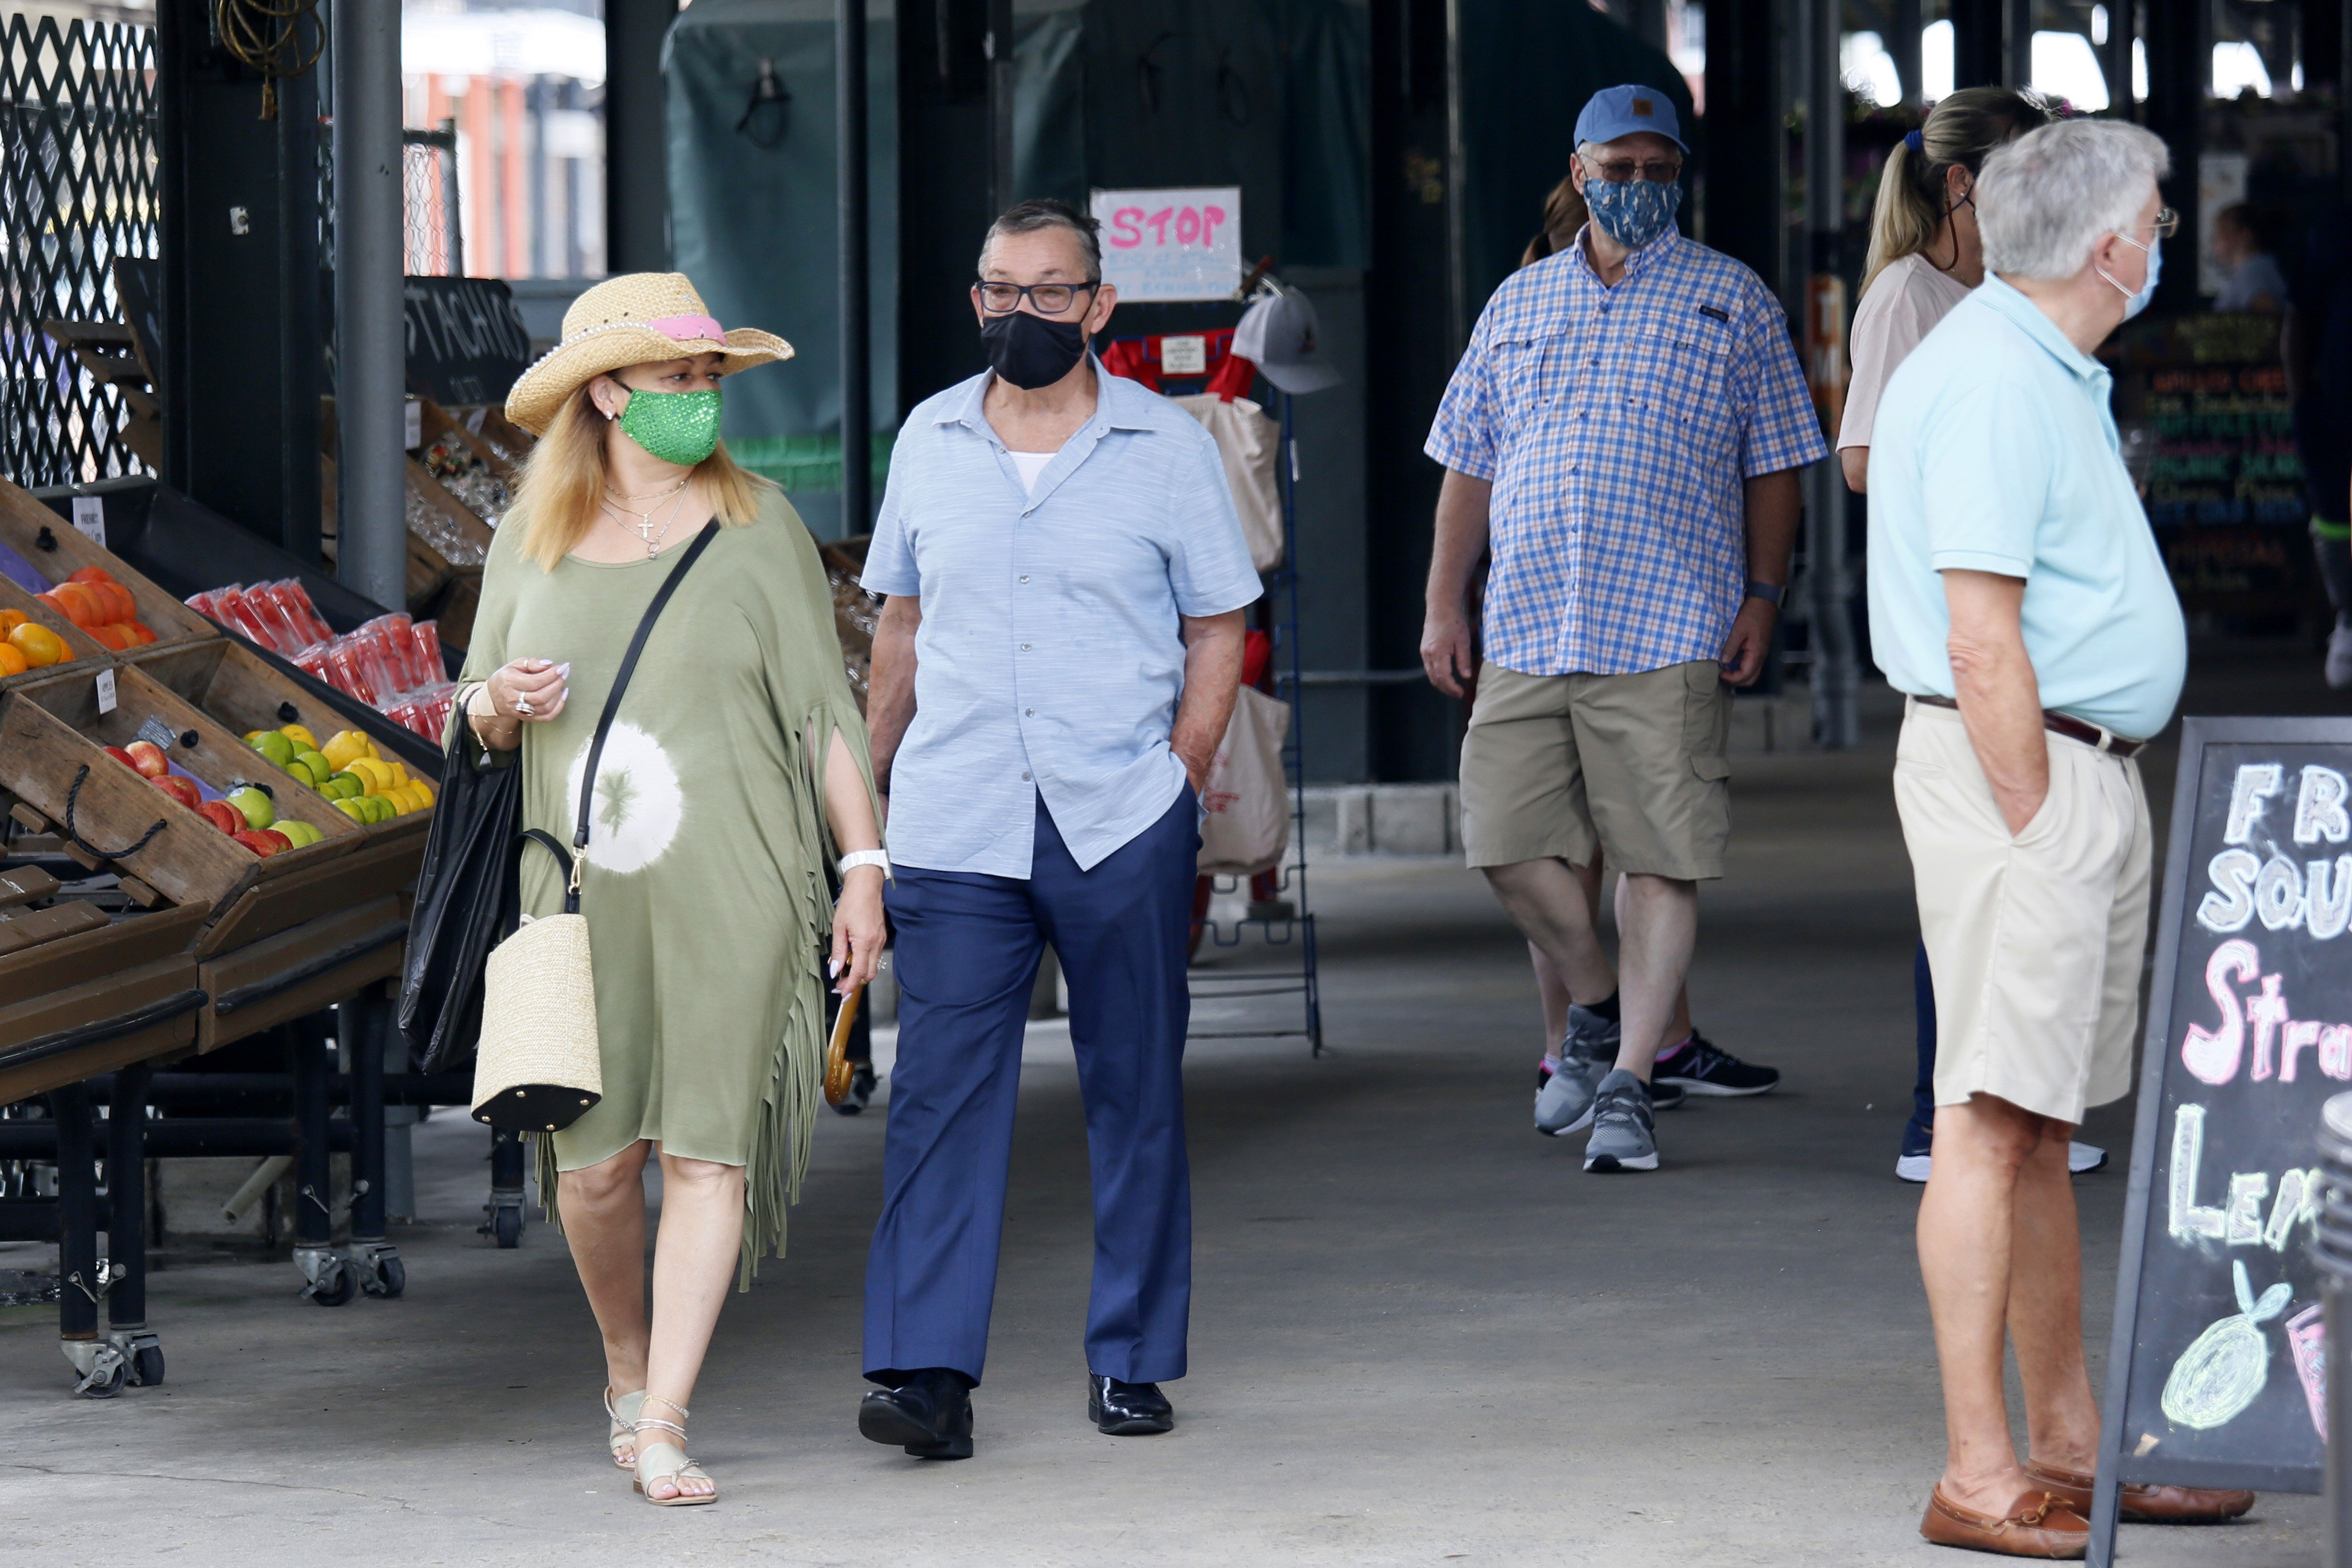 People visit a market in New Orleans on August 3, 2021.